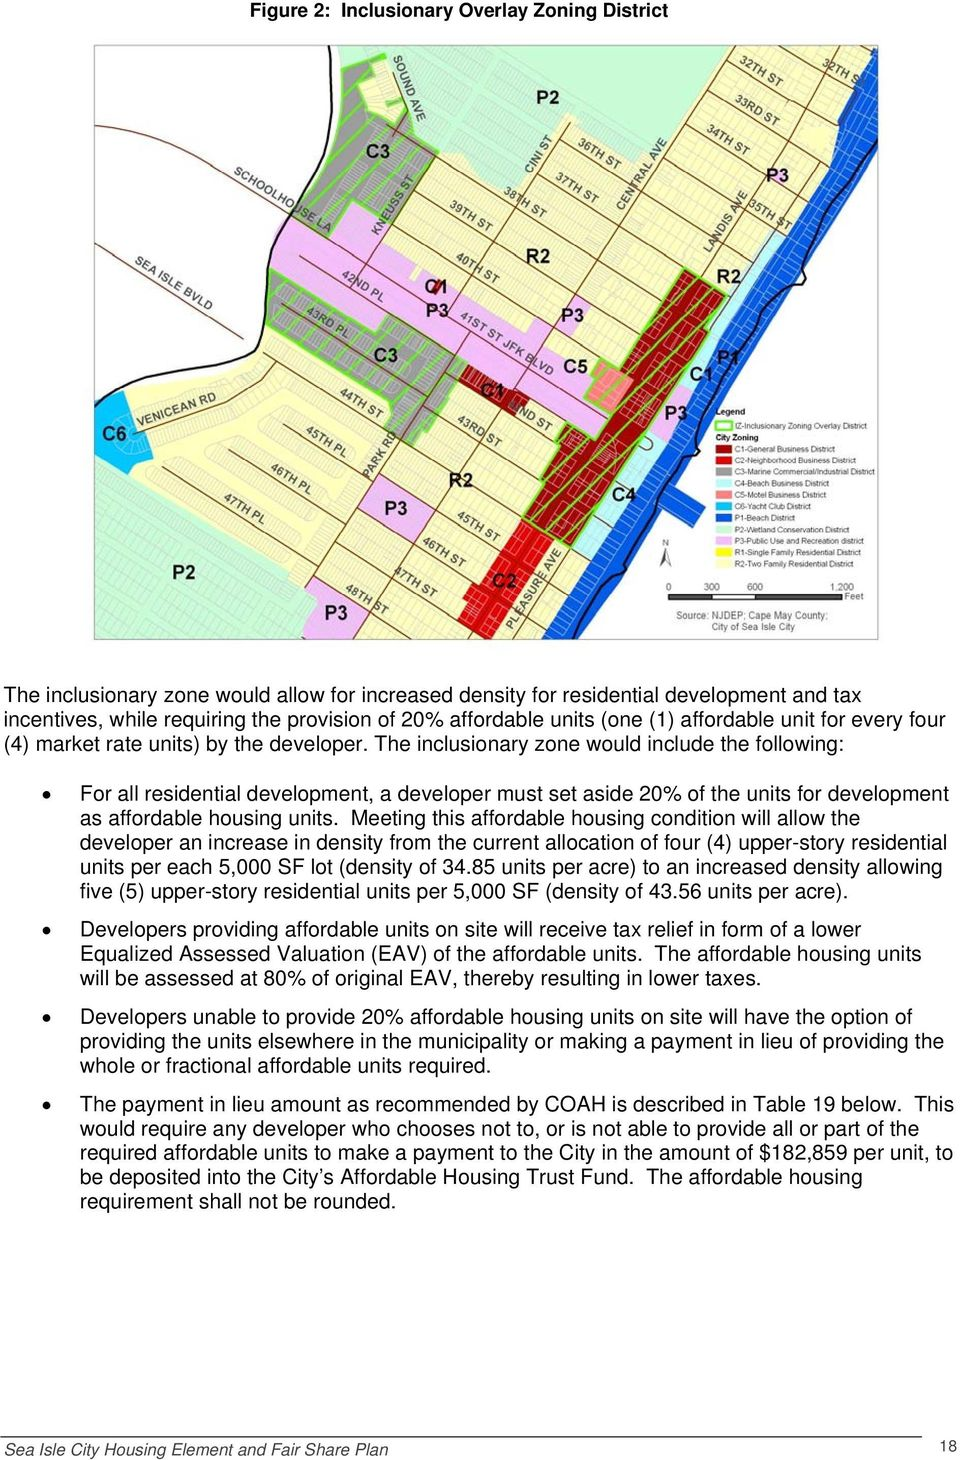 The inclusionary zone would include the following: For all residential development, a developer must set aside 20% of the units for development as affordable housing units.